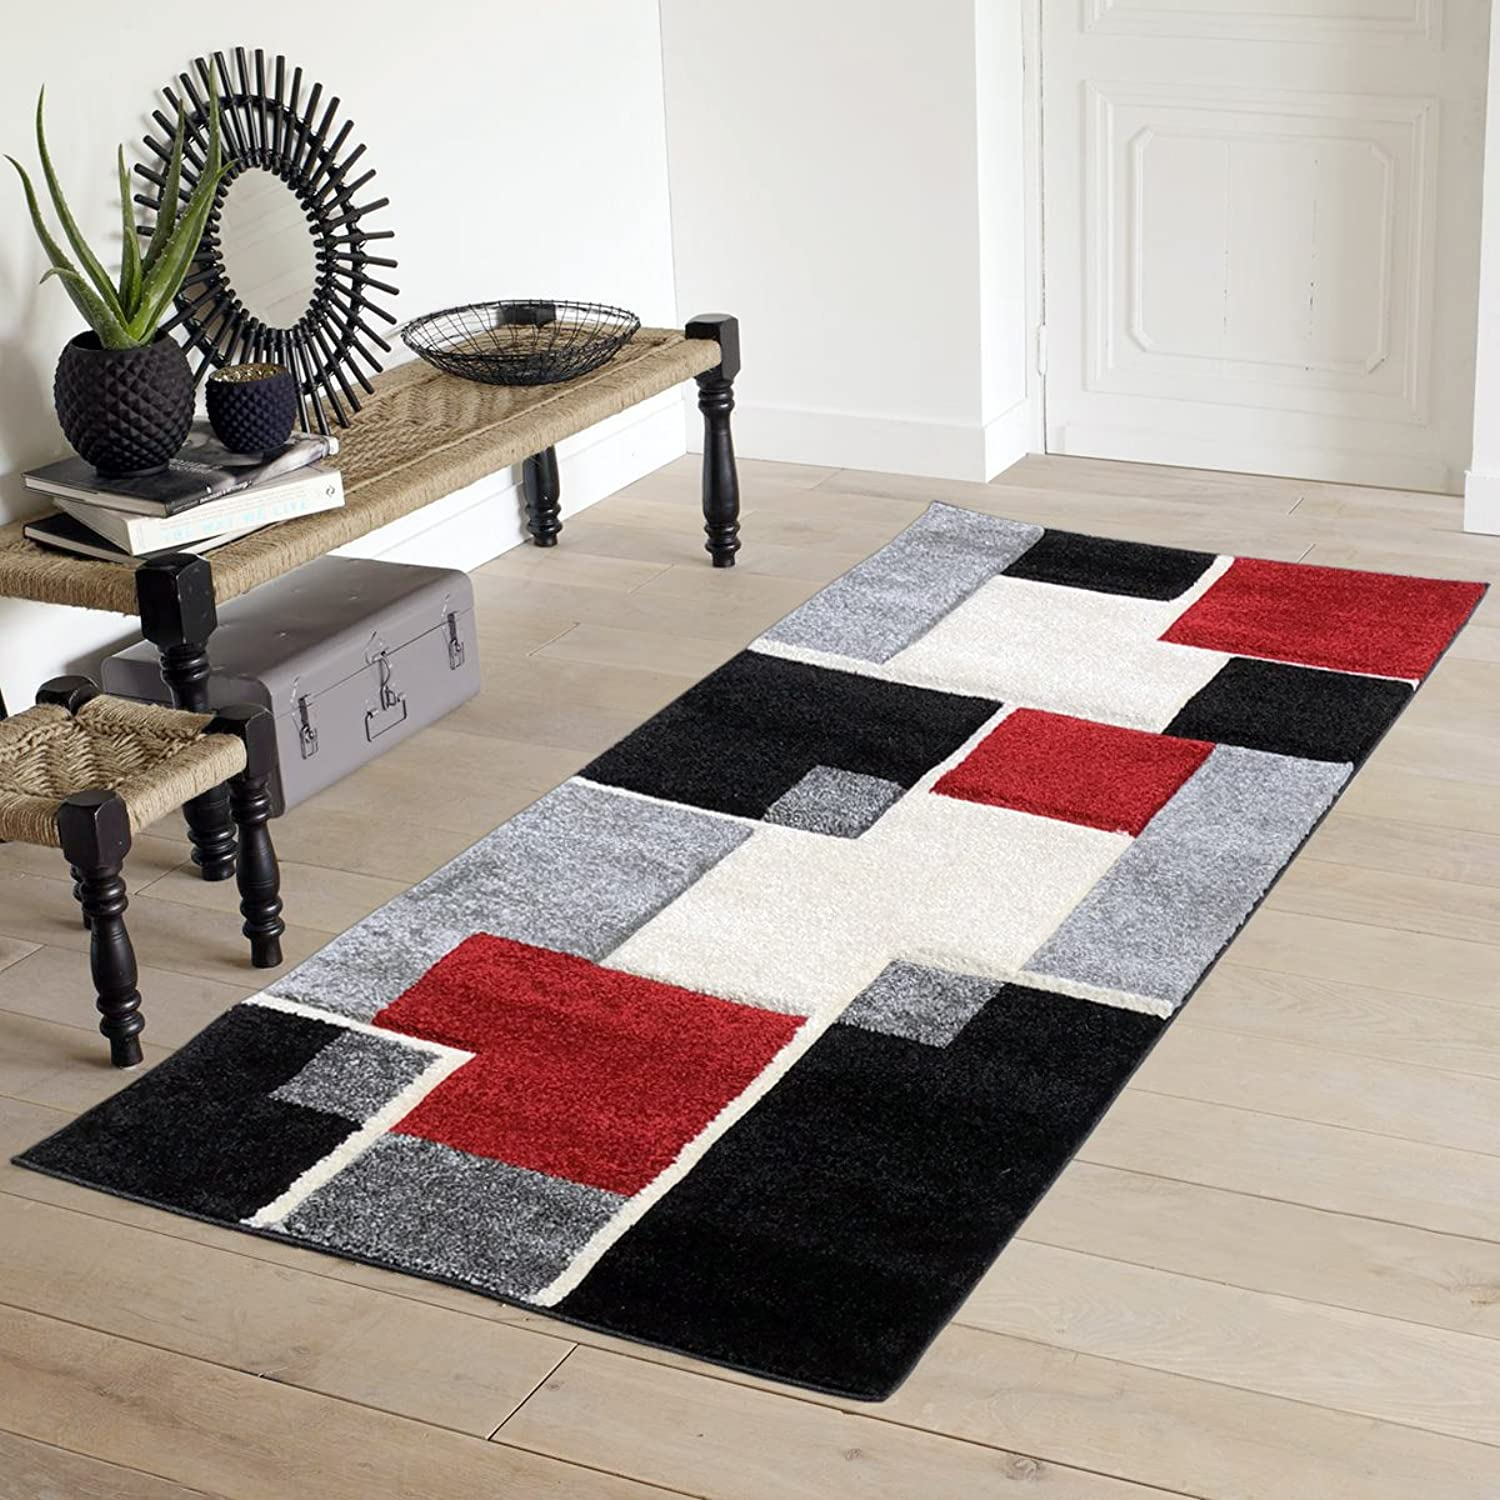 Easy Clean Stain Fade Resistant for Living Room Bedroom Kitchen Area Rug Renzo Collection, Modern Geometric Space Area Rug - Artistic Mediterranean Area Rug (2x5, Red)